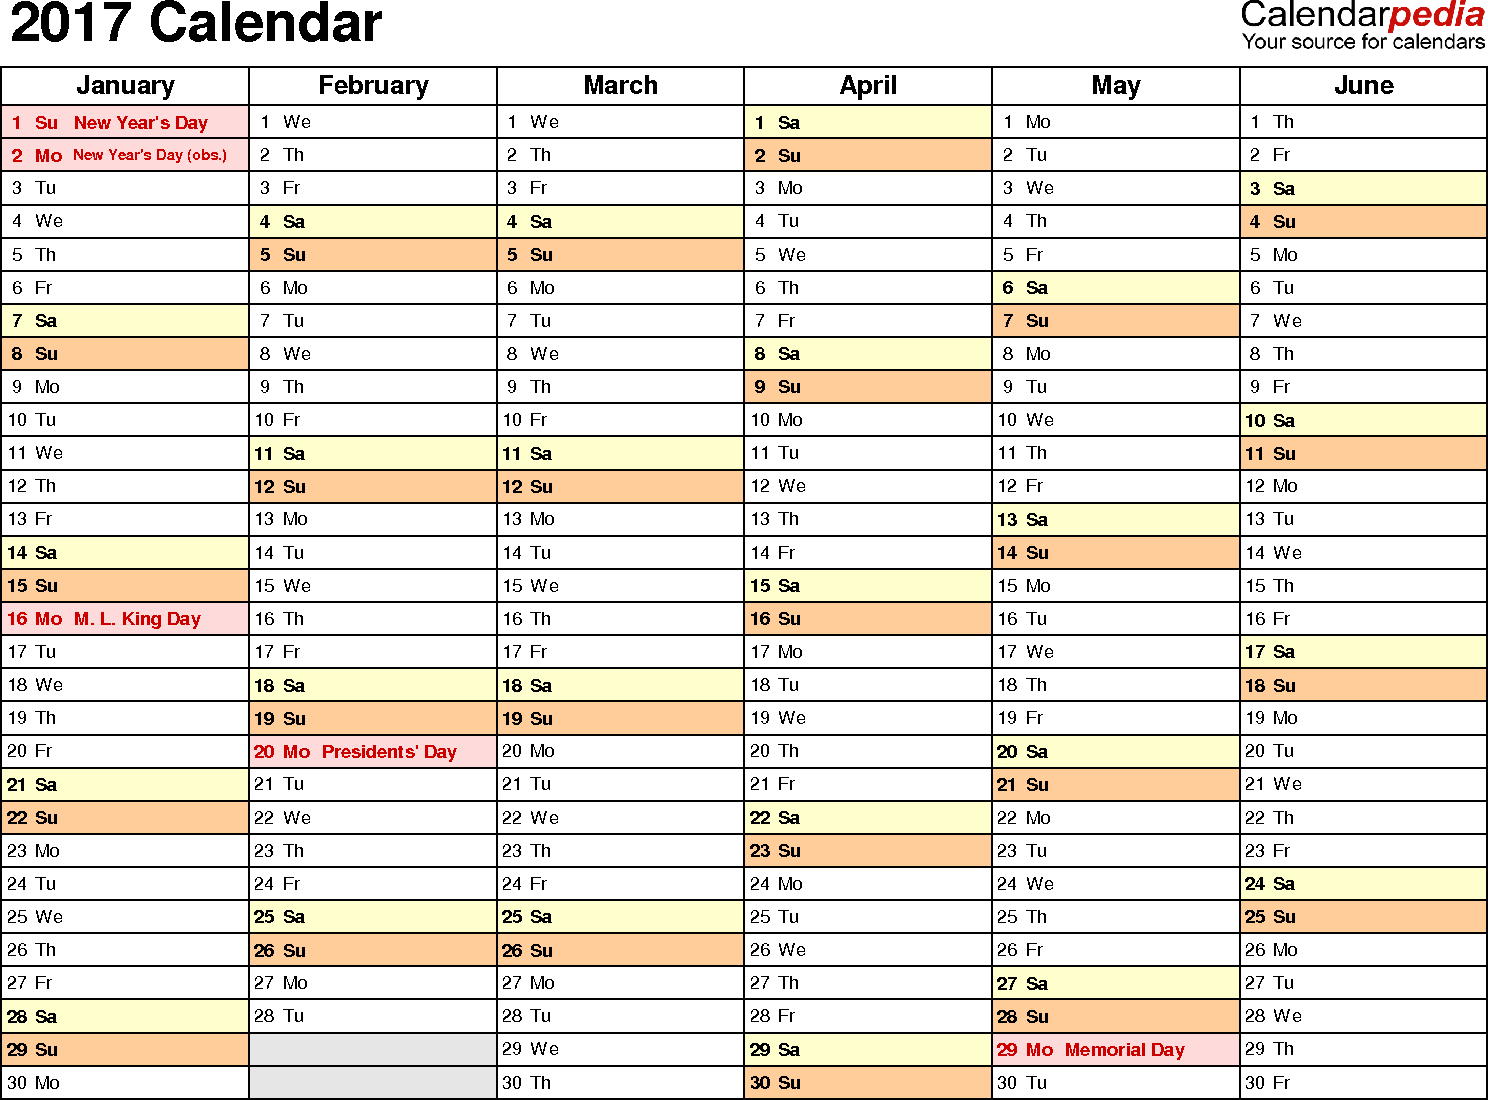 Ediblewildsus  Terrific  Calendar  Download  Free Printable Excel Templates Xls With Hot Template   Calendar For Excel Months Horizontally  Pages Landscape Orientation With Easy On The Eye Unique Rows In Excel Also Find Not Working In Excel In Addition Excel Calendar Spreadsheet And Excel Monopoly As Well As Calculating Net Present Value In Excel Additionally Microsoft Excel Spreadsheet Tutorial From Calendarpediacom With Ediblewildsus  Hot  Calendar  Download  Free Printable Excel Templates Xls With Easy On The Eye Template   Calendar For Excel Months Horizontally  Pages Landscape Orientation And Terrific Unique Rows In Excel Also Find Not Working In Excel In Addition Excel Calendar Spreadsheet From Calendarpediacom